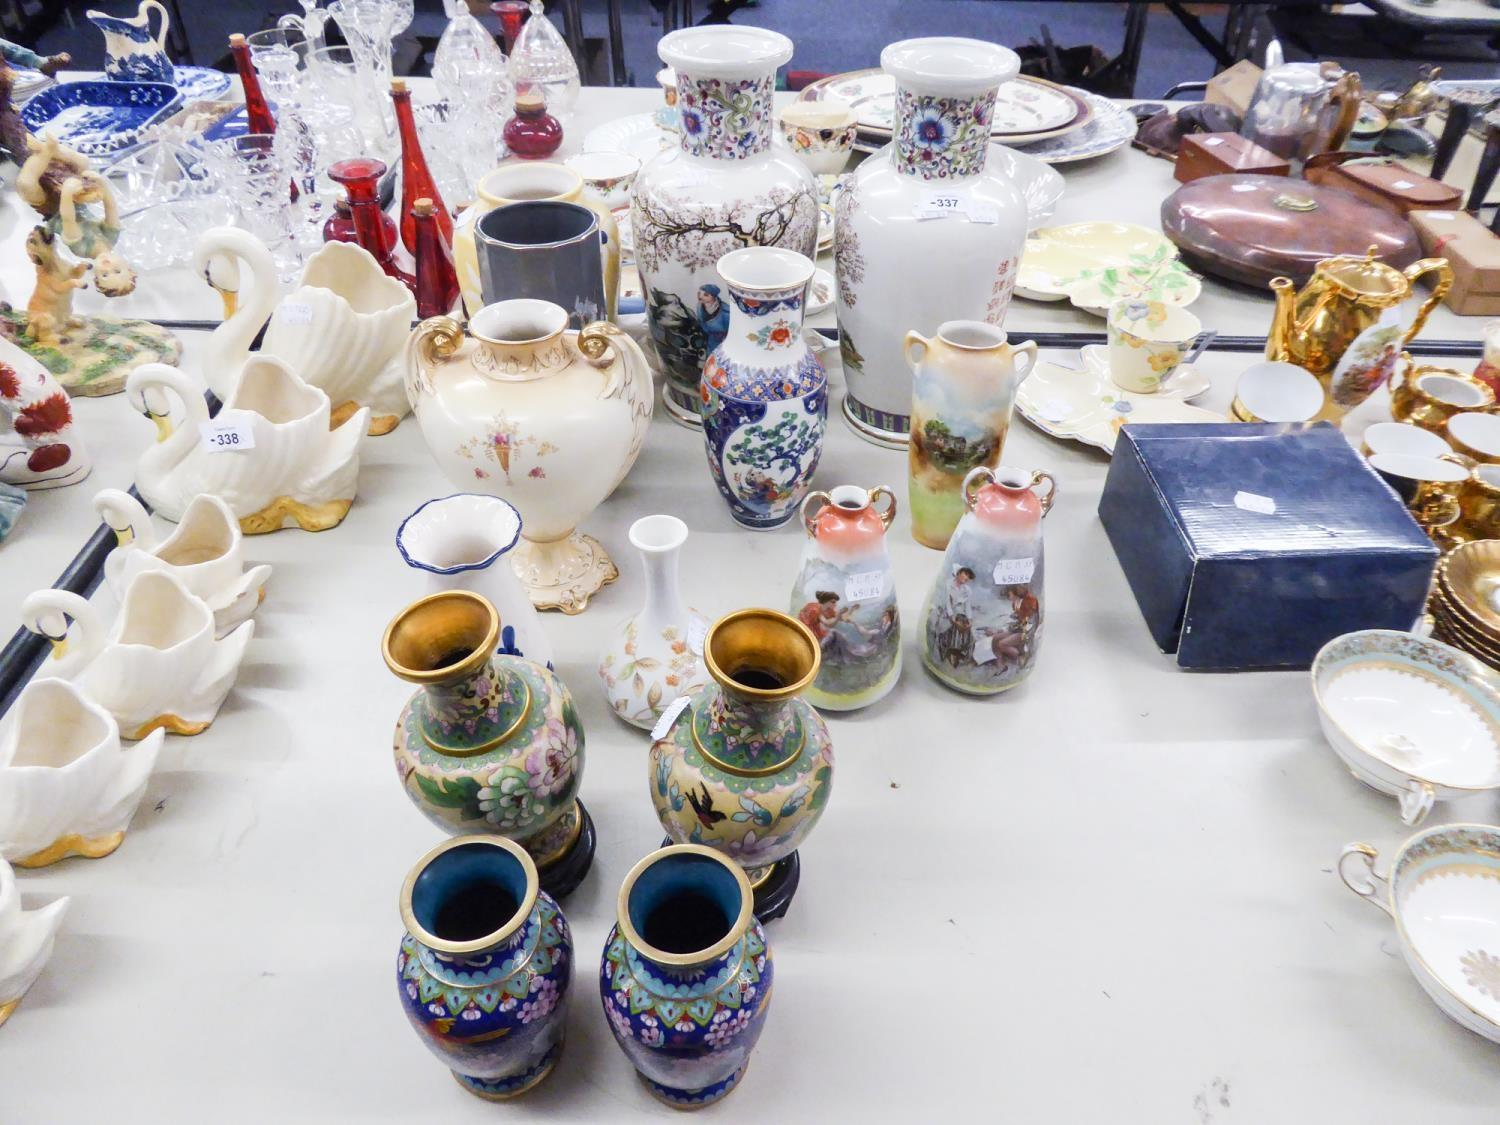 """Lot 337 - PAIR OF CHINESE PORCELAIN VASES, 12"""" HIGH, TWO PIAIRS OF ORIENTAL CLOISONNE VASES, 6"""" AND 5"""" HIGH"""